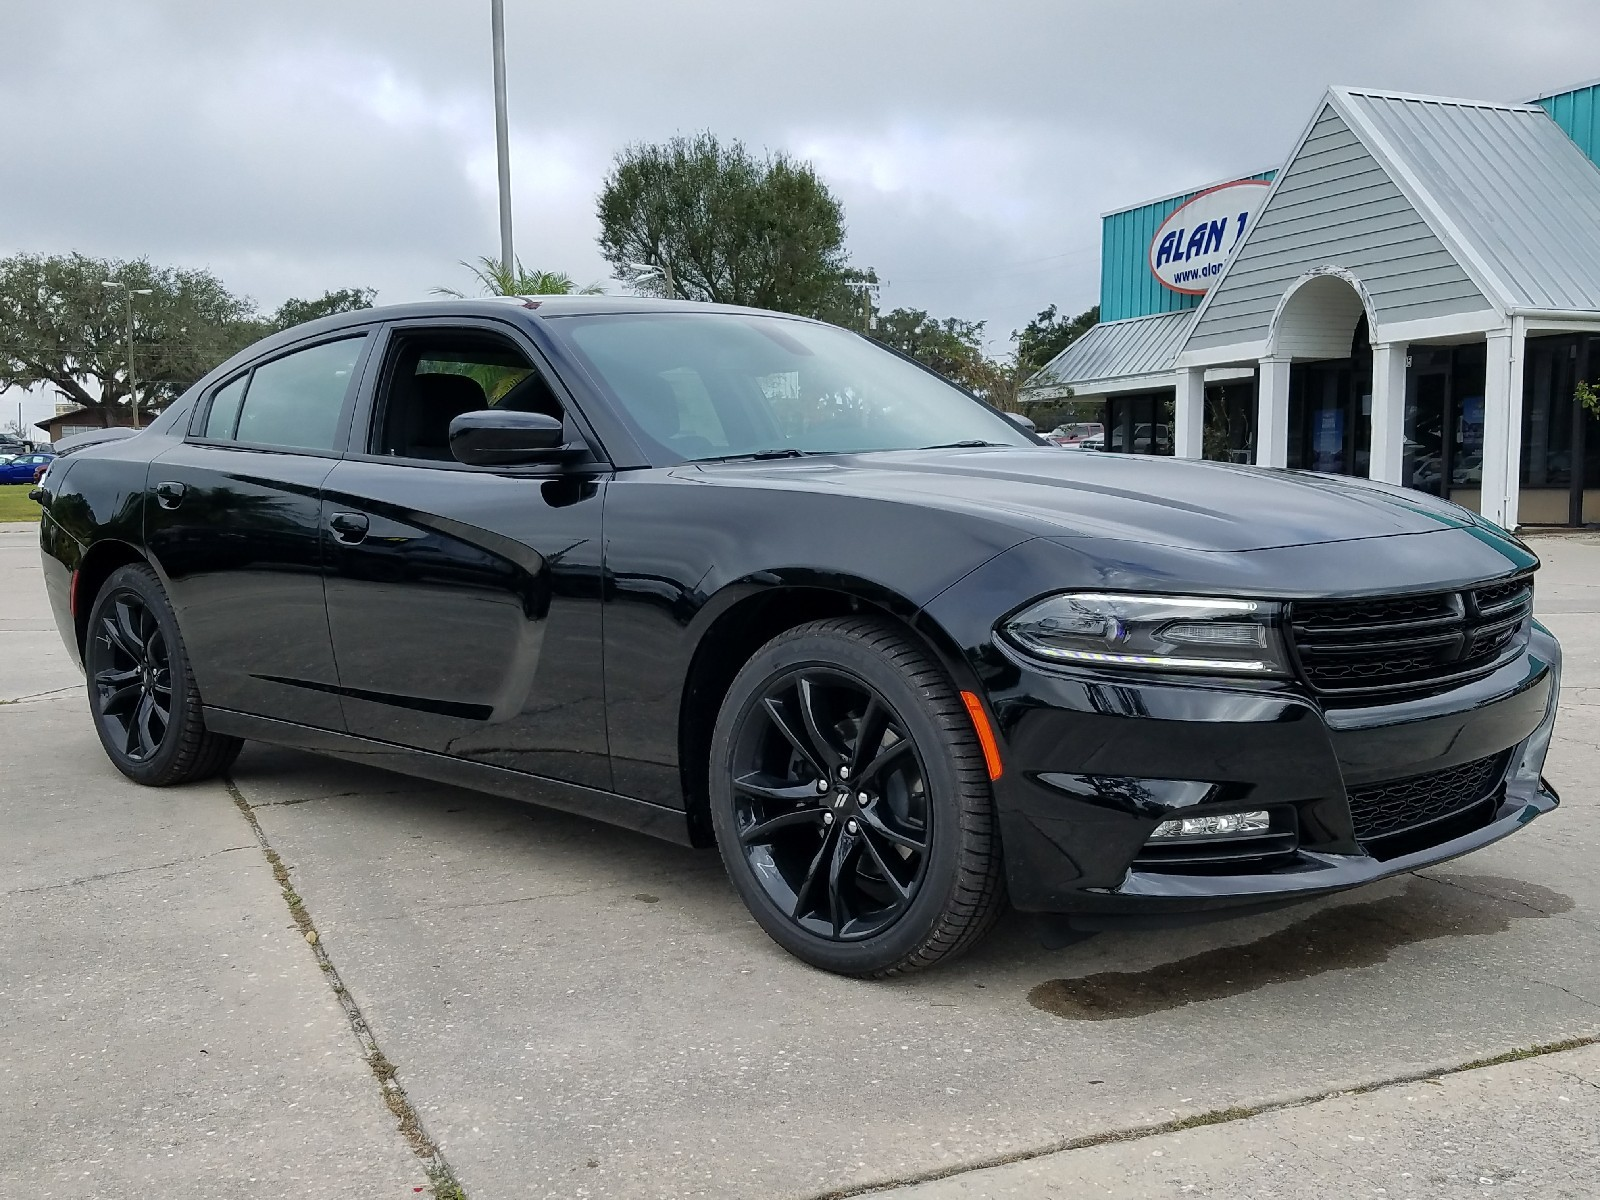 Used Dodge Charger for Sale Lovely New 2018 Dodge Charger Sxt Plus Rwd for Sale Lease Wauchula